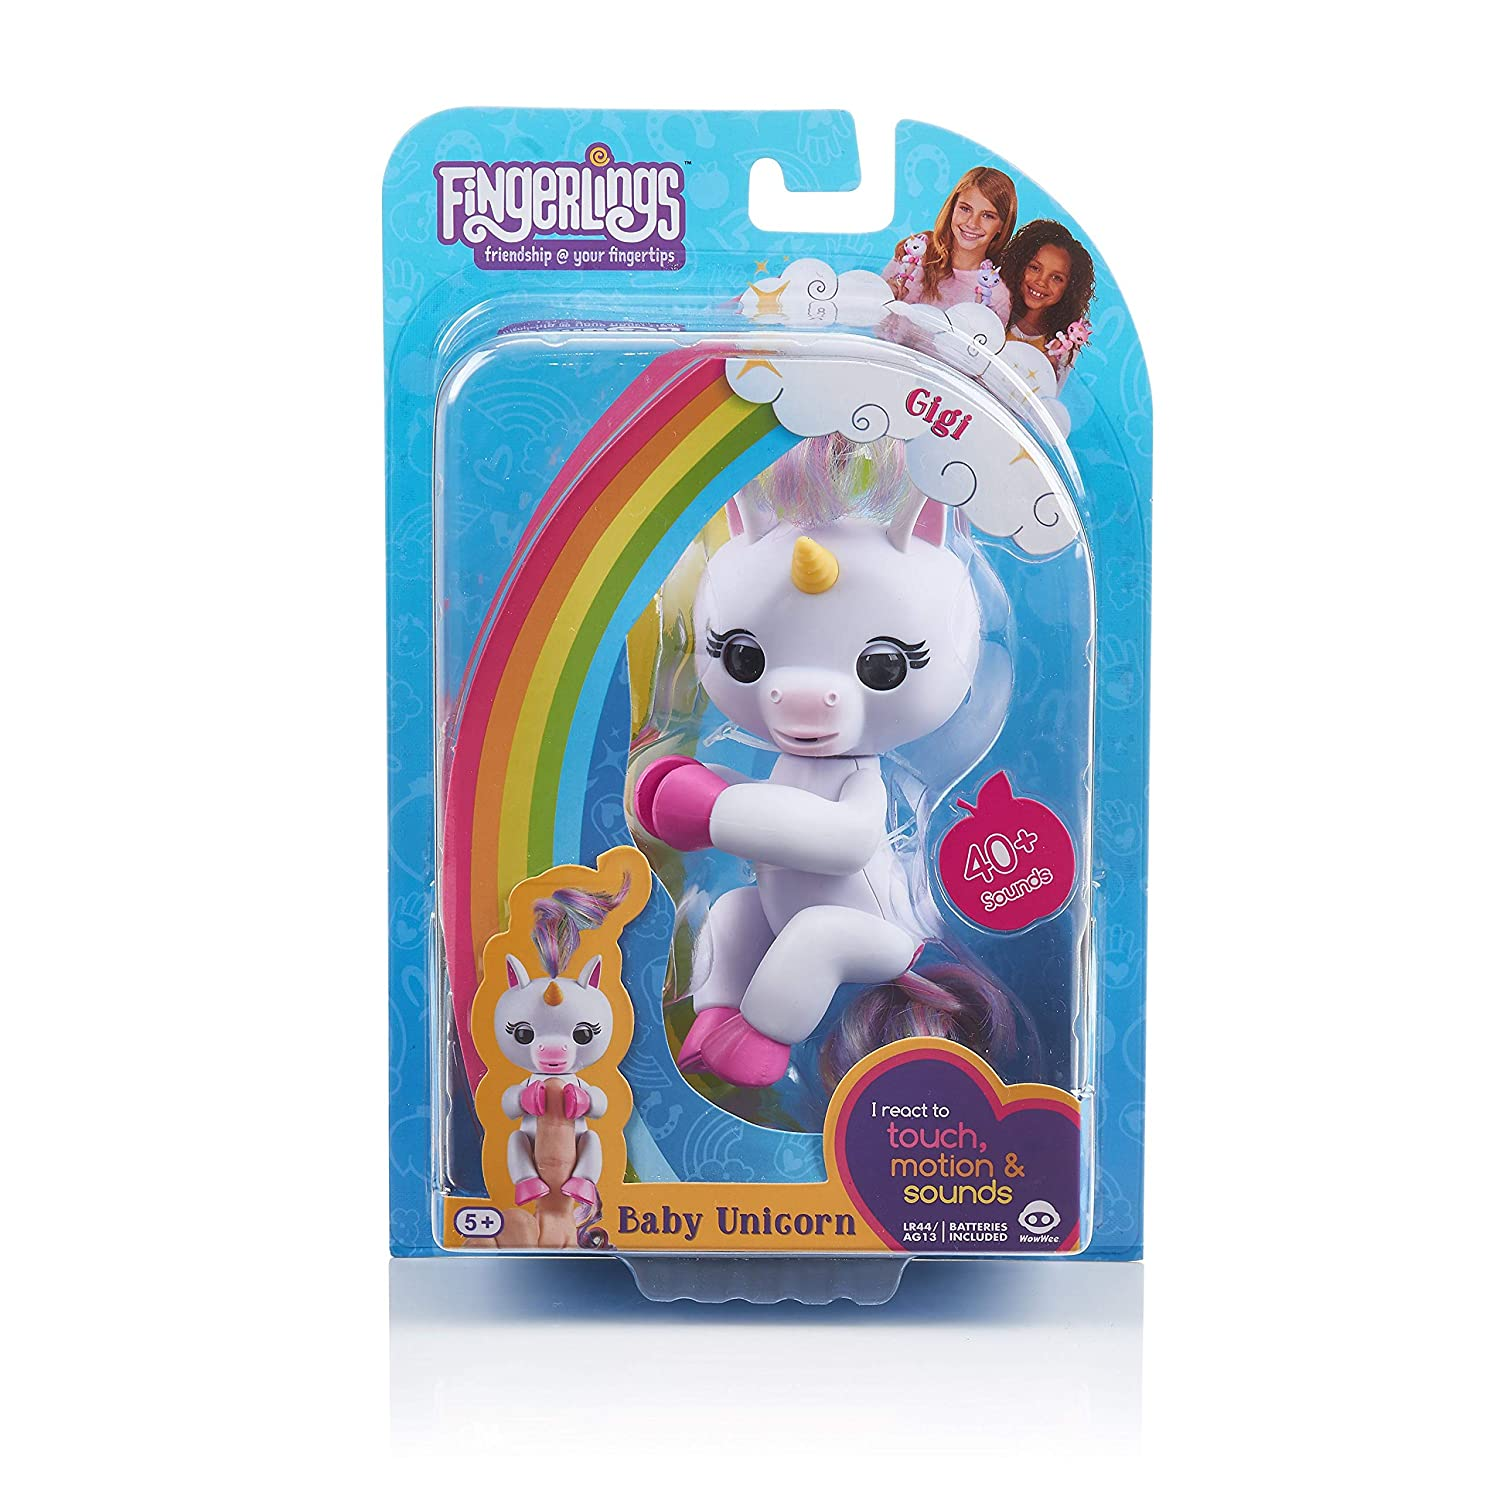 c344838ff Amazon.com: Fingerlings Baby Unicorn - Gigi (White with Rainbow Mane and  Tail) - Interactive Baby Pet - by WowWee: Toys & Games